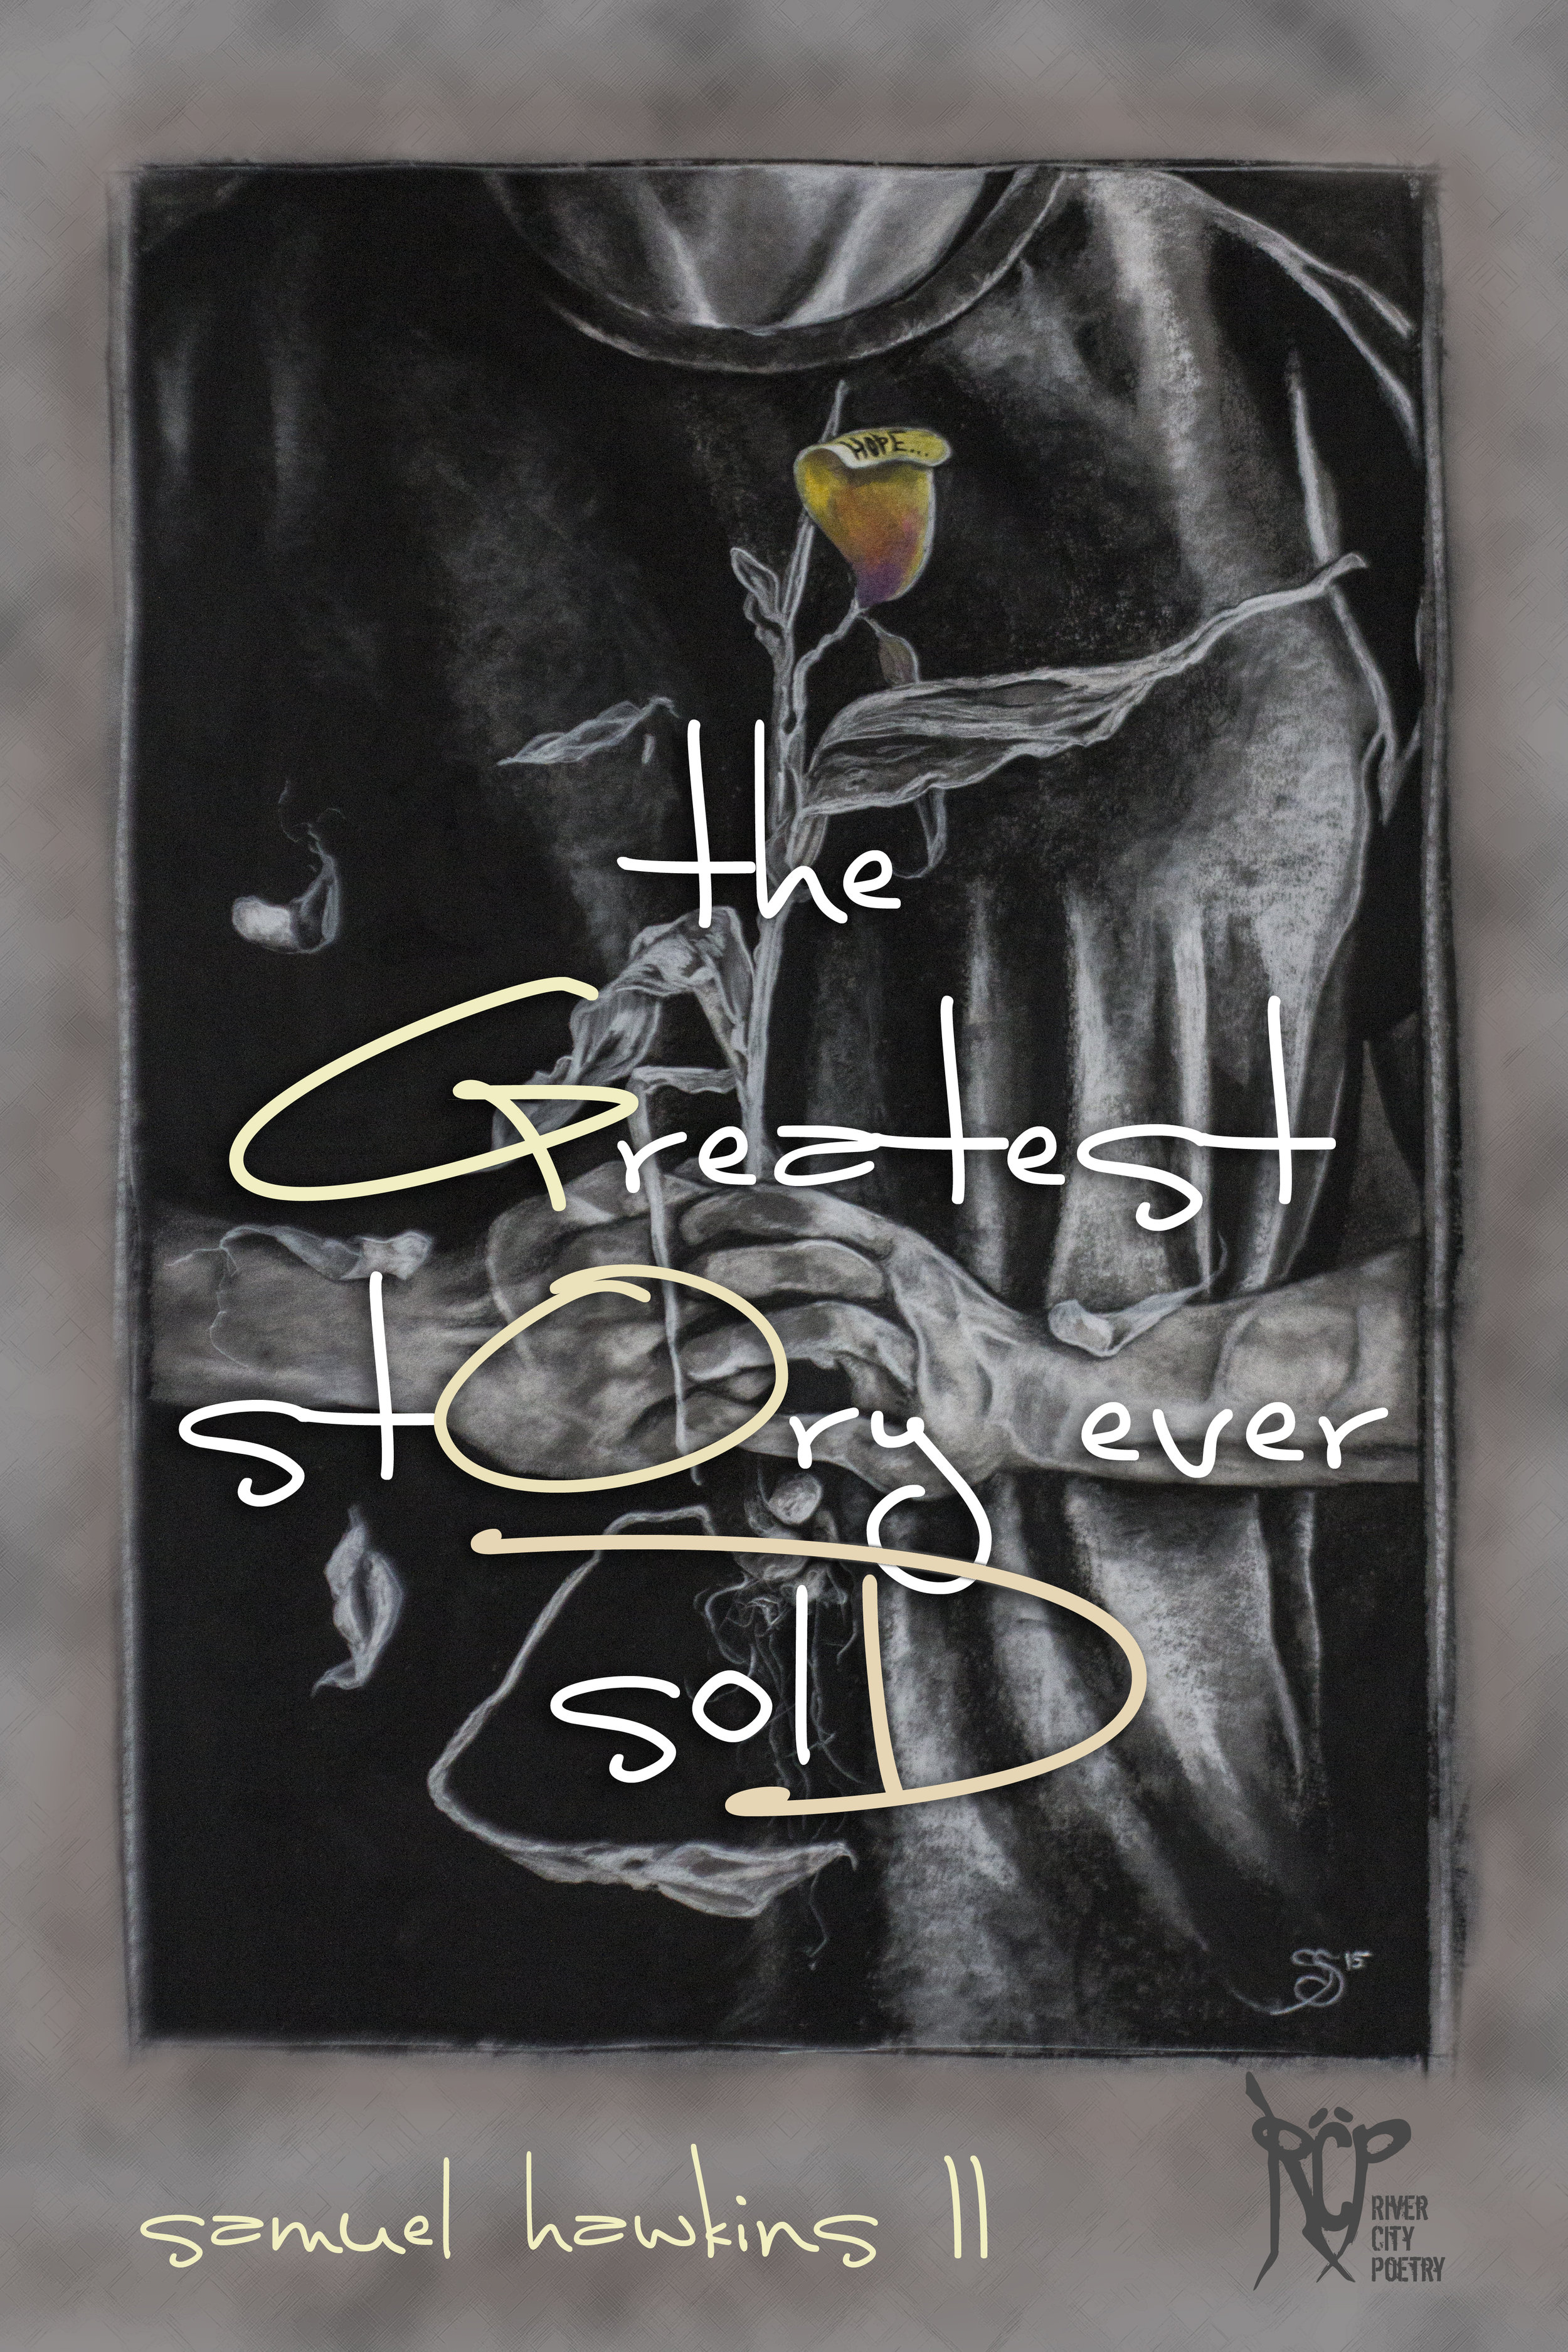 the Greatest stOry ever solD - This is Samuel's second book of poetry. Samuel takes us on a journey through the world's darkness and our own dark moments to find light and ultimately hope. The poems in this collection will make you reflect on life's difficult moments and then do something to change it. In this excerpt Samuel explores the effect fear has on us and the need to let go of it to grow.